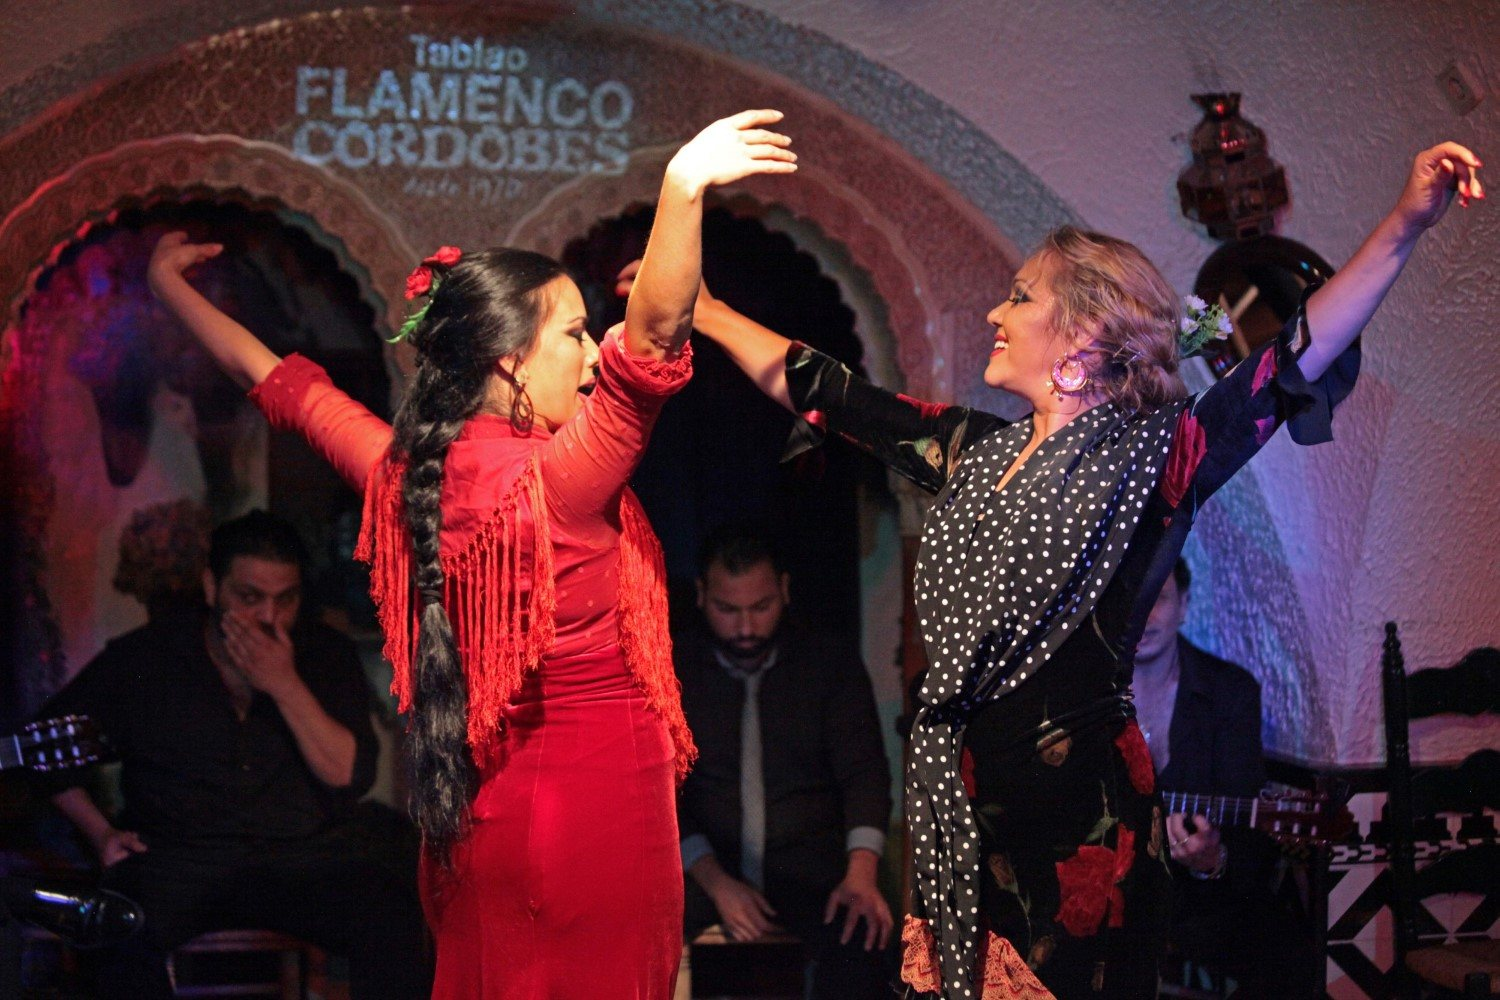 Show de Flamenco no Tablao Cordobés Barcelona (Jantar Opcional) - Living Tours